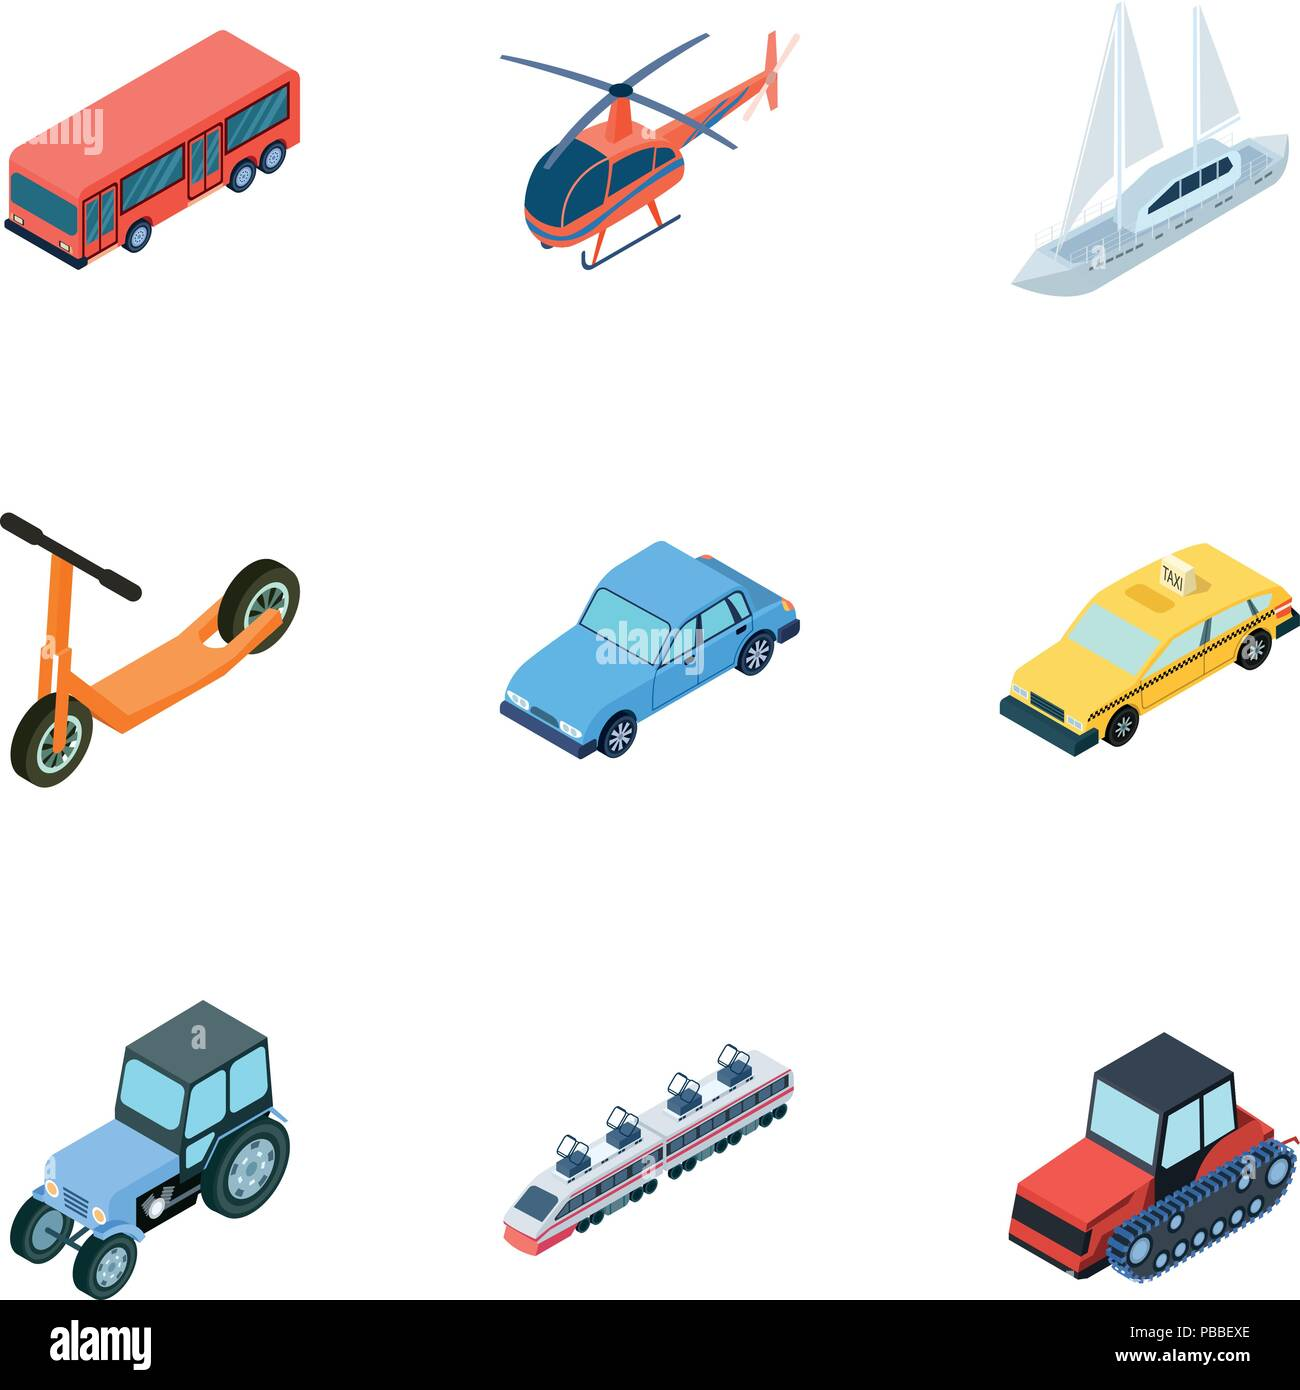 Land Water Air Transport Machines That People Use